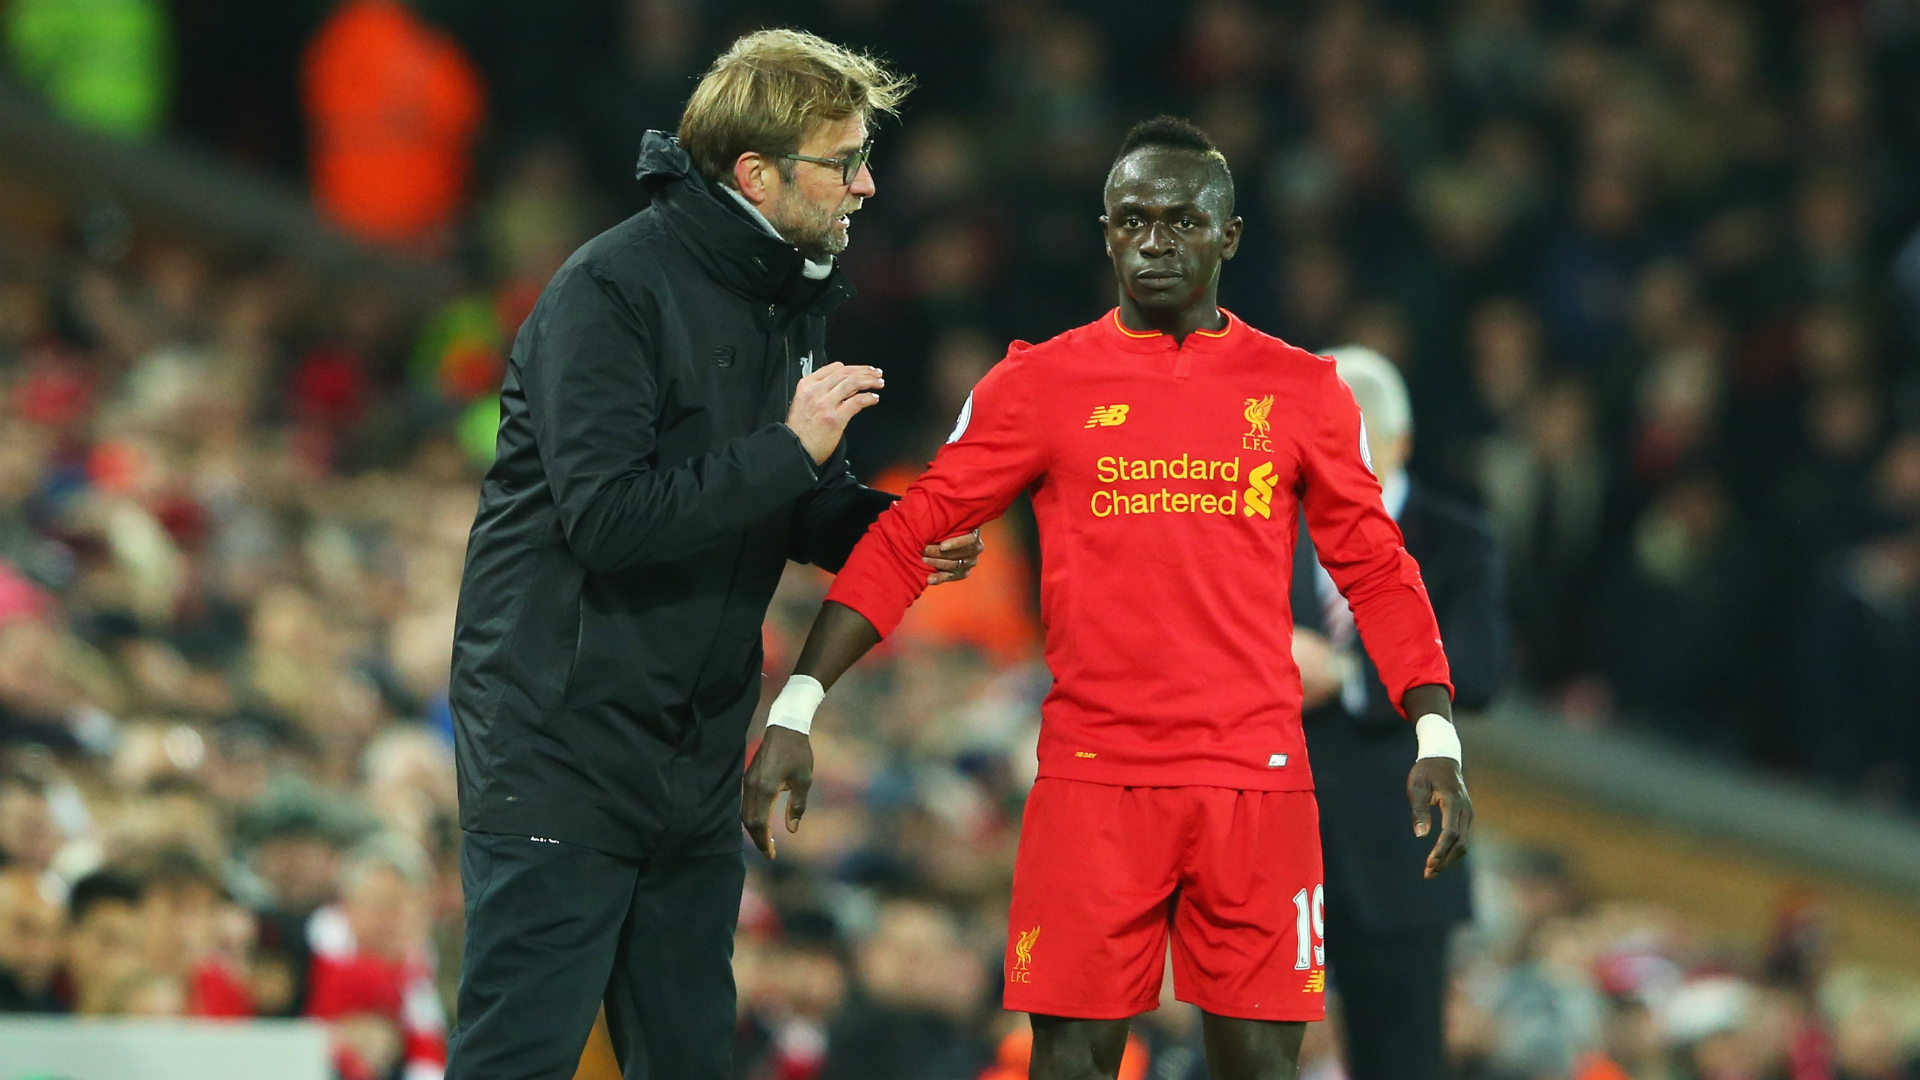 Klopp Liverpool can cope without Mane